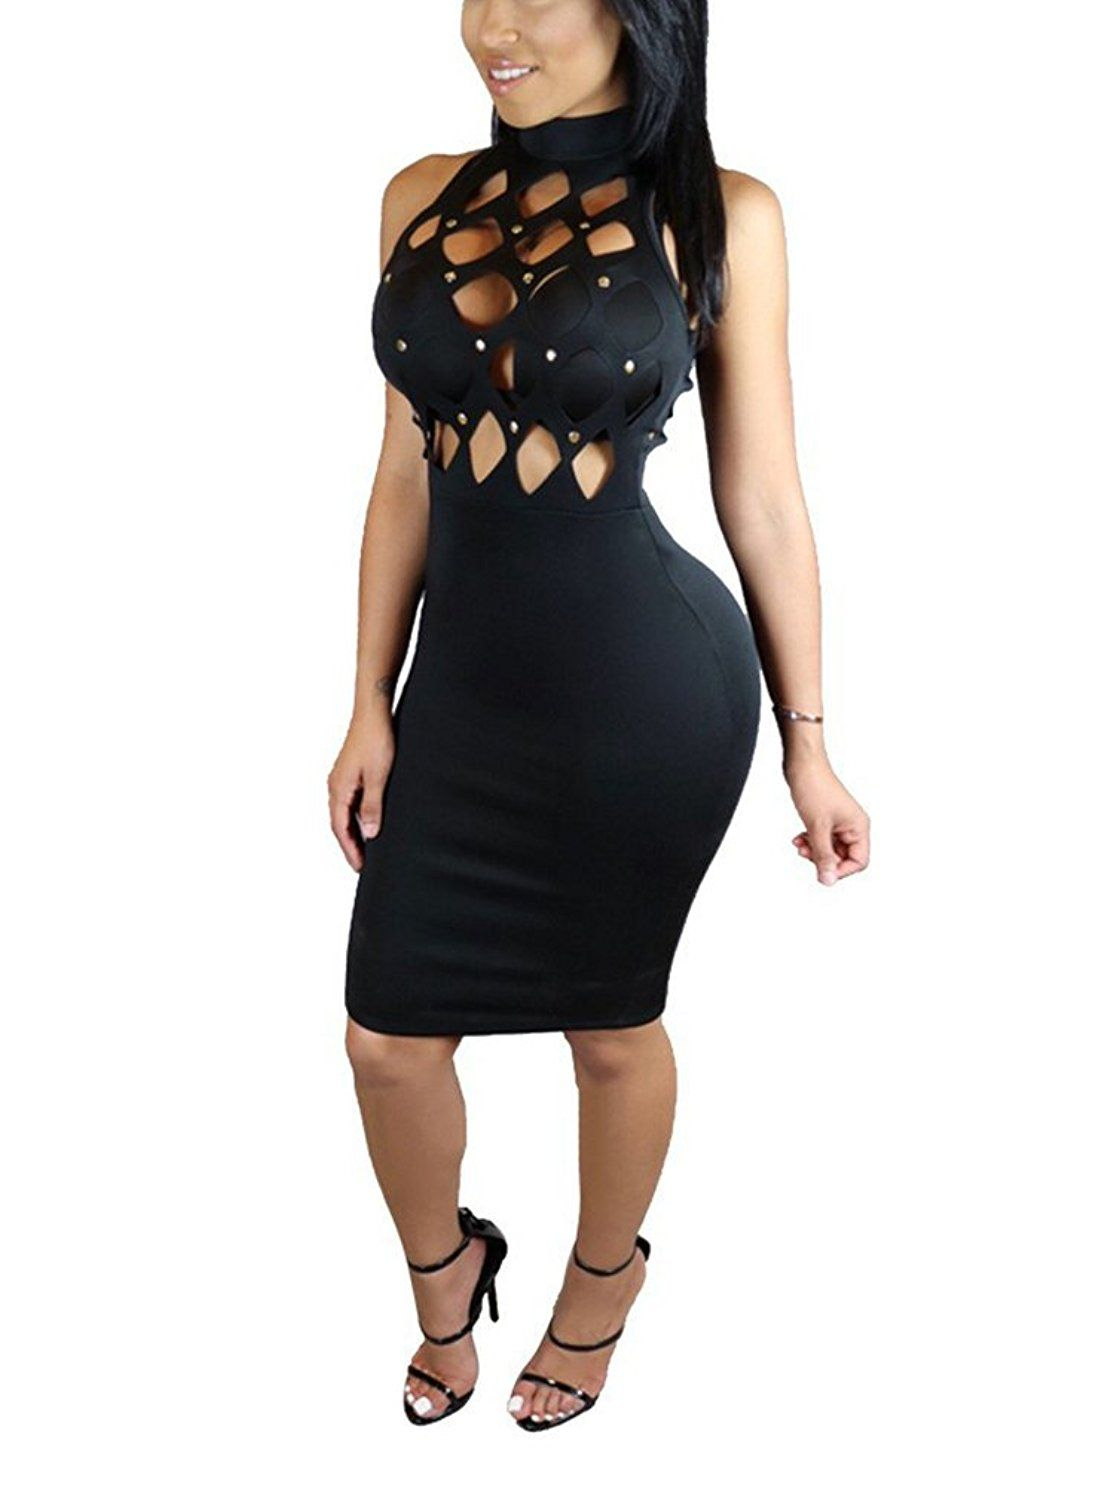 e69334d2a8c45 Amazon.com: Annystore Womens Sexy Hollow Out Sleeveless Short Bandage Party  Bodycon Dress: Clothing